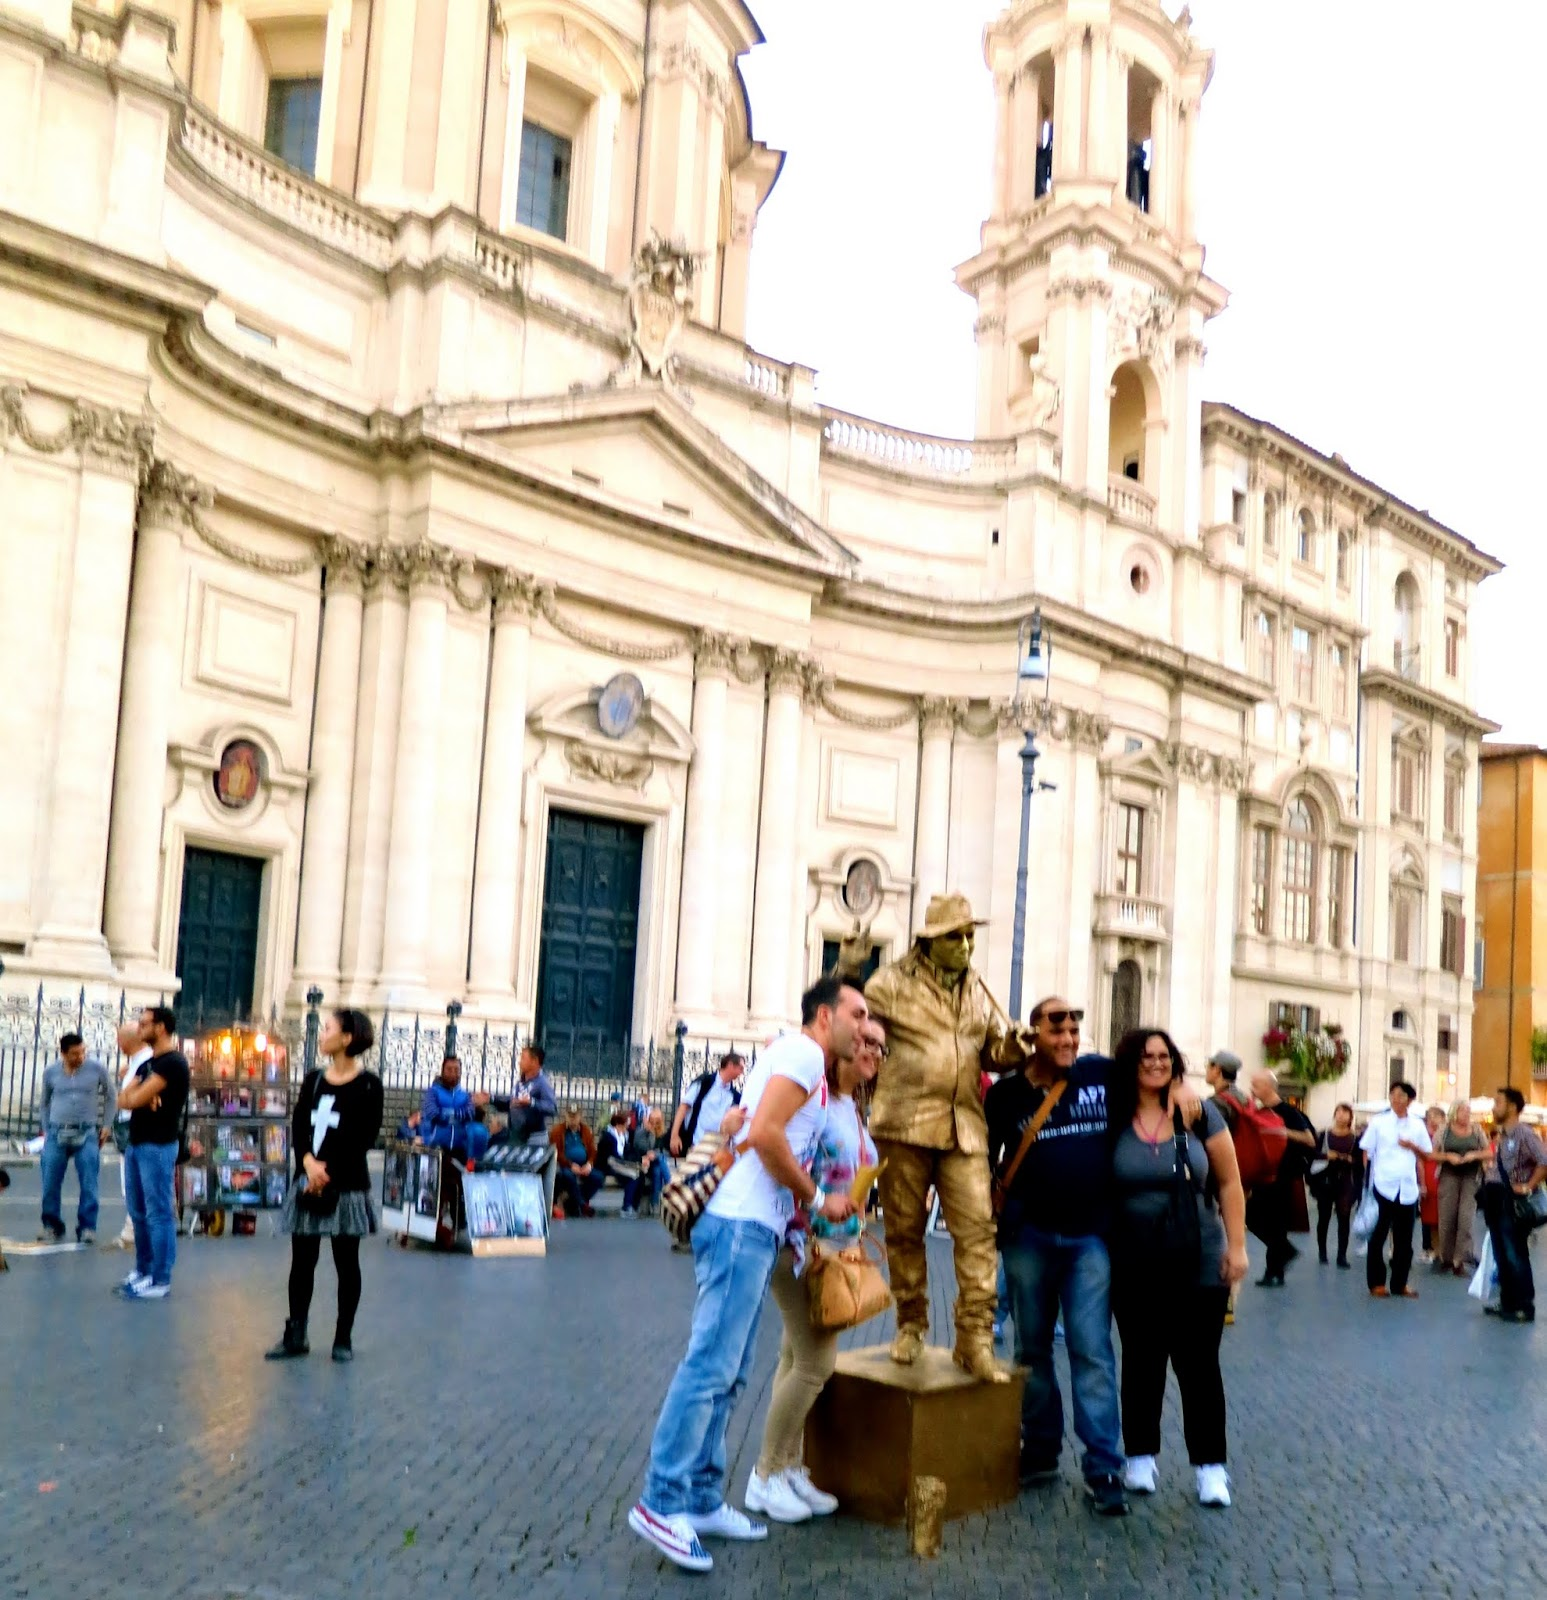 Human Statue in Piazza Navona